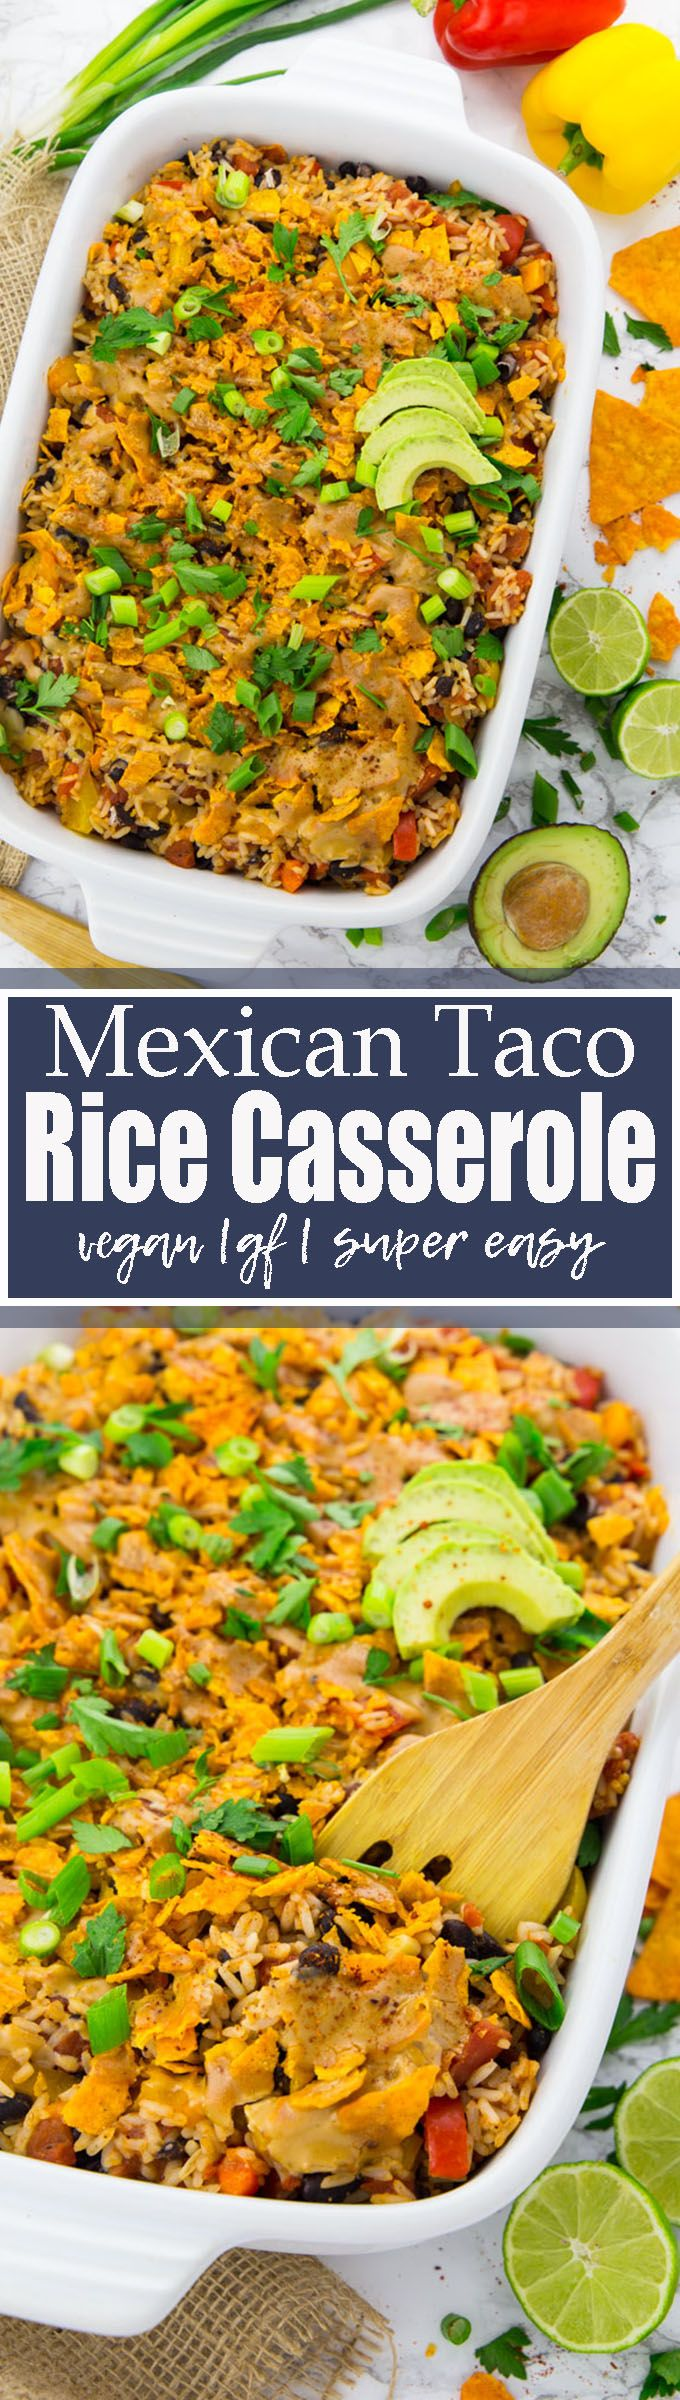 """This vegan Mexican rice casserole with tacos, bell pepper, and black beans is pure comfort food! And it's so easy to make and pretty healthy as well! Perfect for """"Taco Tuesday"""" or basically any day of the week! Find more vegetarian recipes at veganheaven.org <3"""